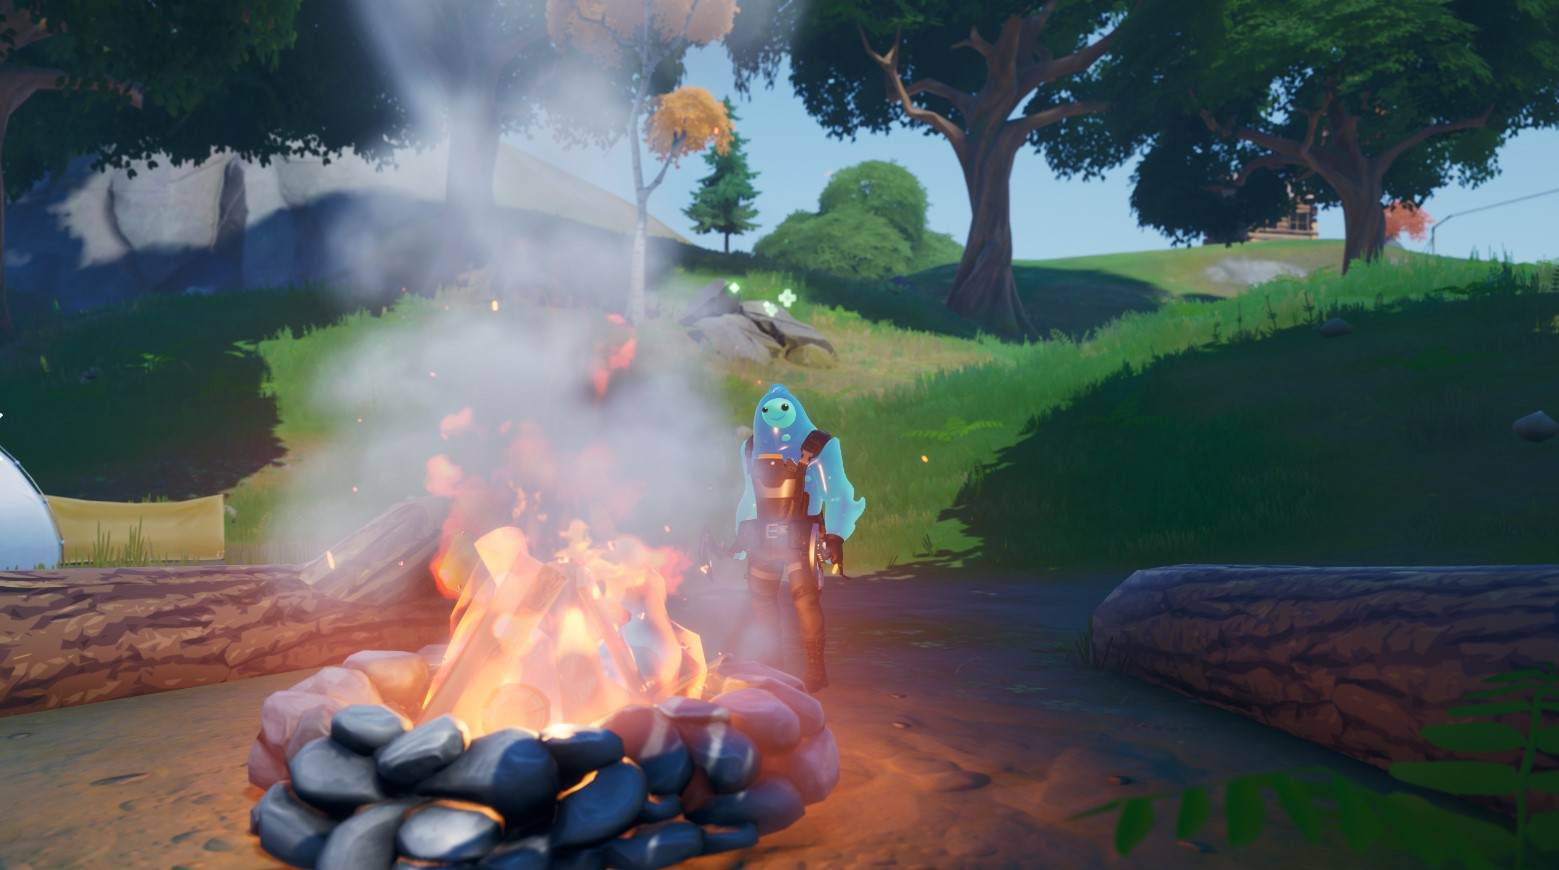 The Campfire Roblox Where To Stoke A Campfire In Fortnite All Campfire Locations Gamepur